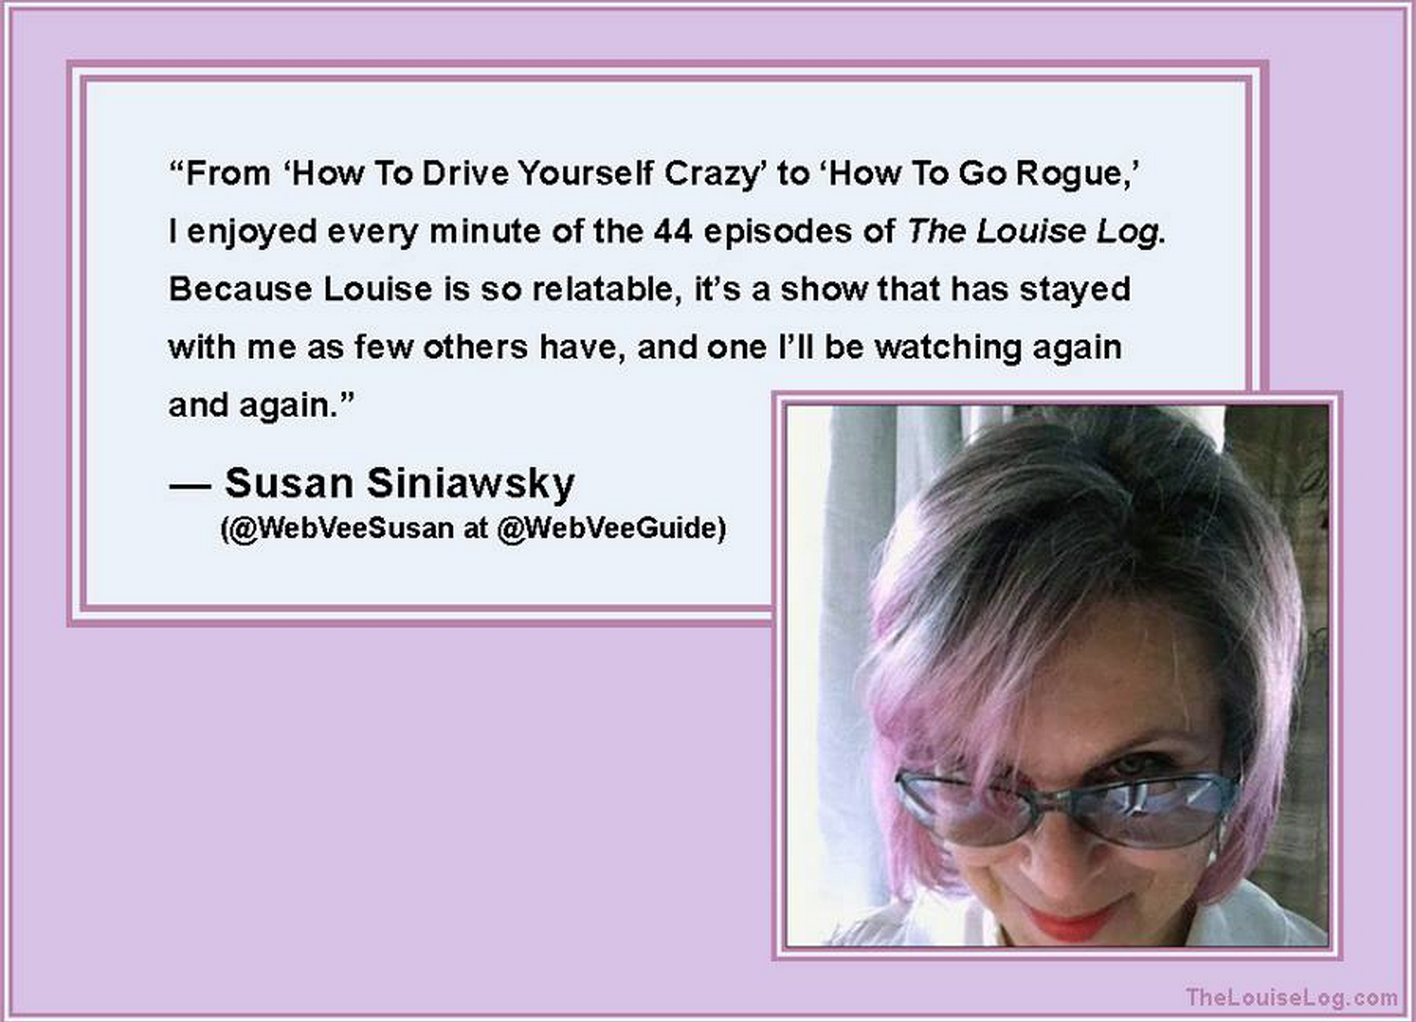 Find out more about Susan:   WebVee Guide    WebVee Guide   on Facebook    @WebVeeSusan    on Facebook    (If you'd like us to feature your quote, please send it along with a photo to anne@thelouiselog.com.)